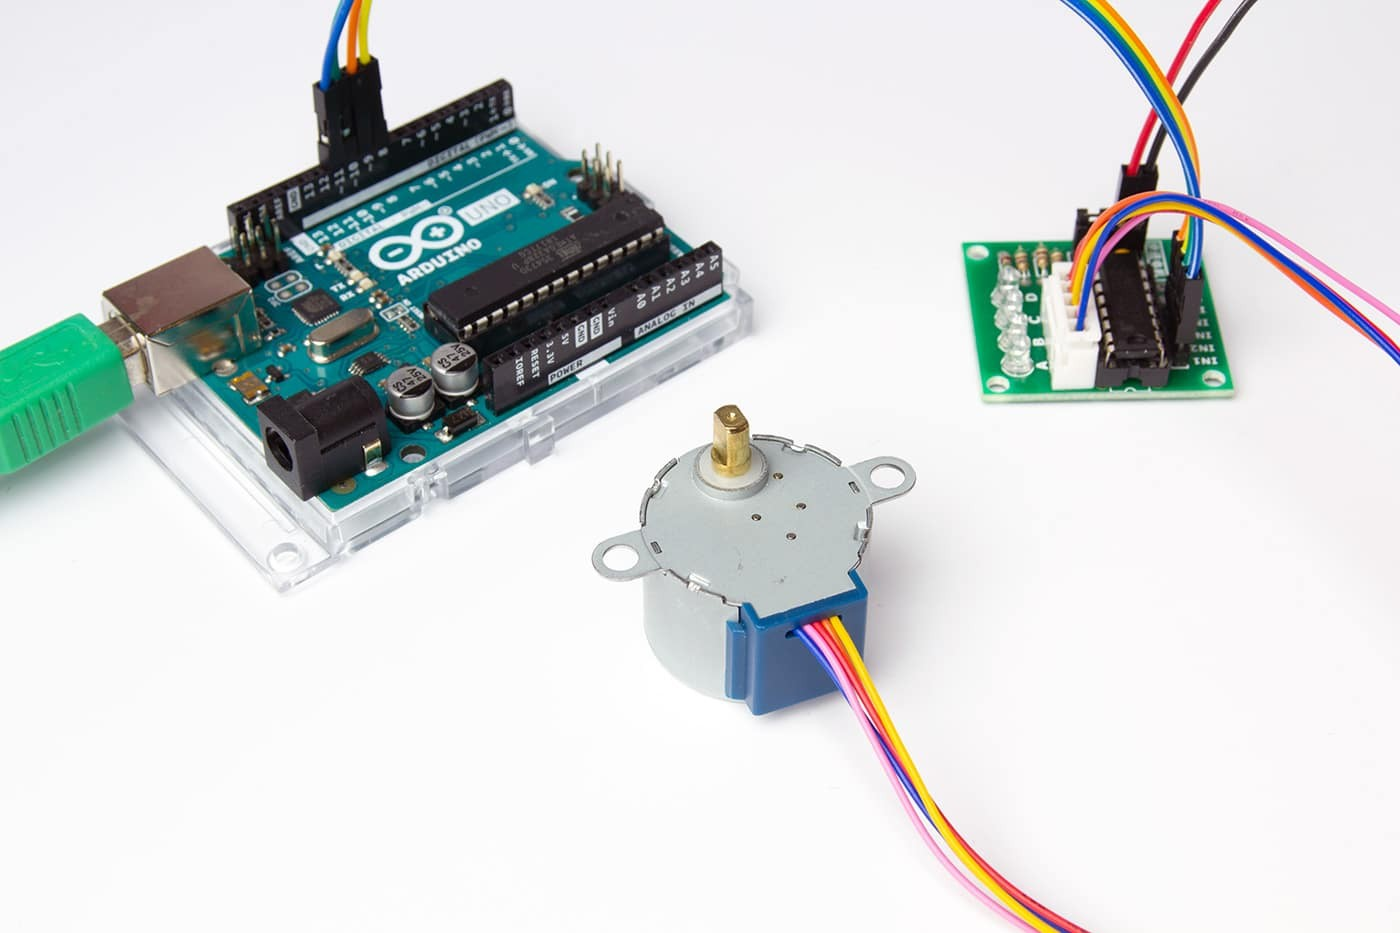 28byj 48 stepper motor with uln2003 driver and arduino tutorial 1